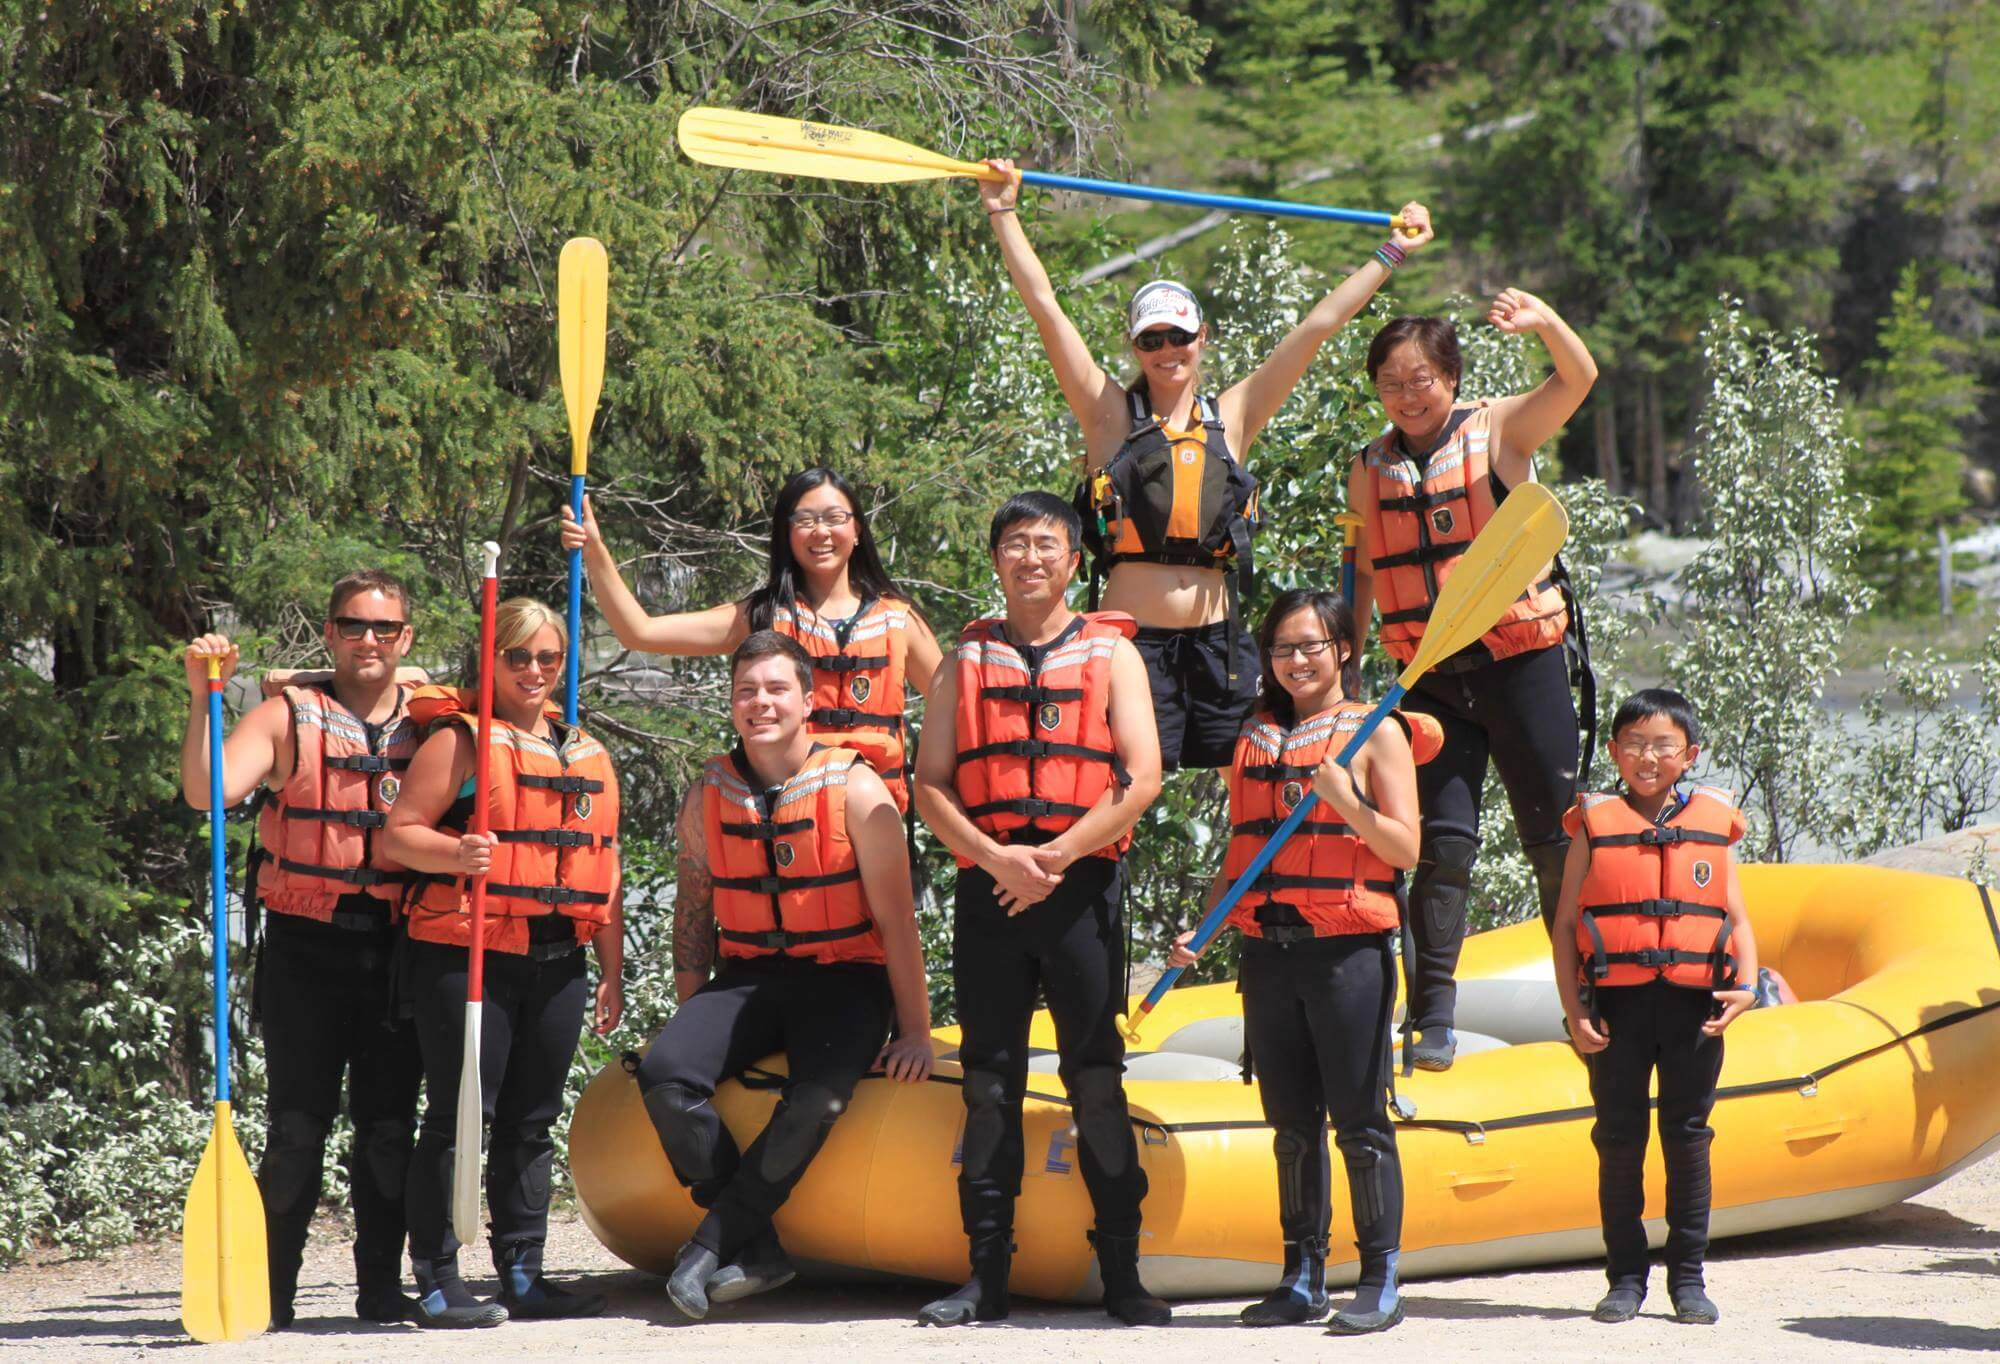 White Water Rafting Jasper Canada Adventure Explore Alberta